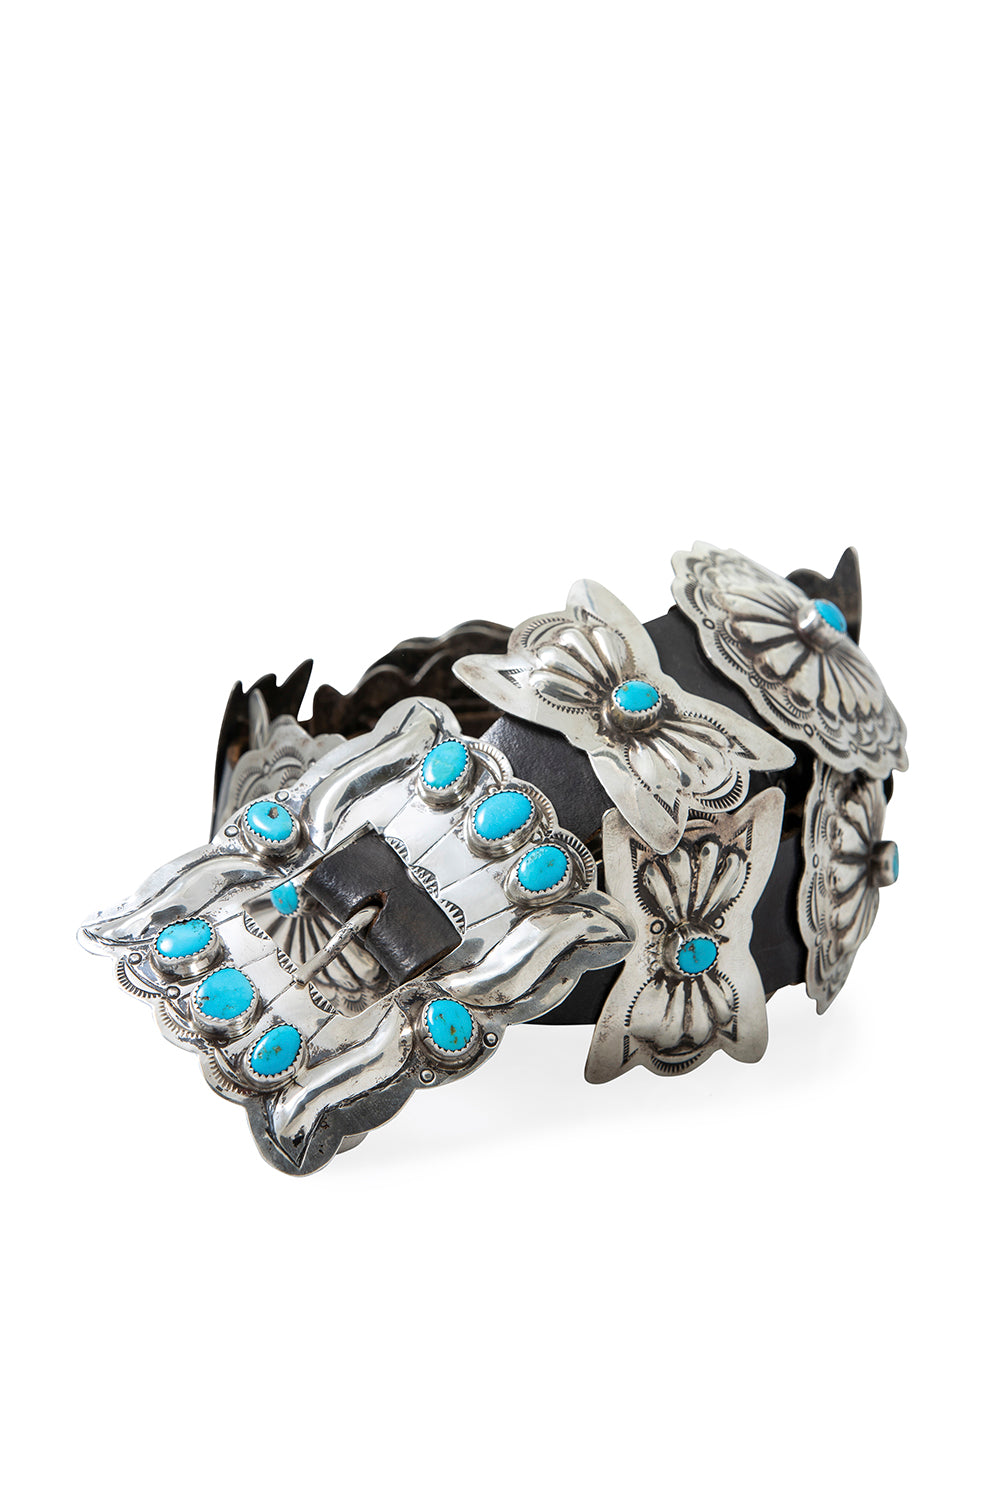 Belt, Concho, Turquoise, Sterling Silver, Vintage, 695